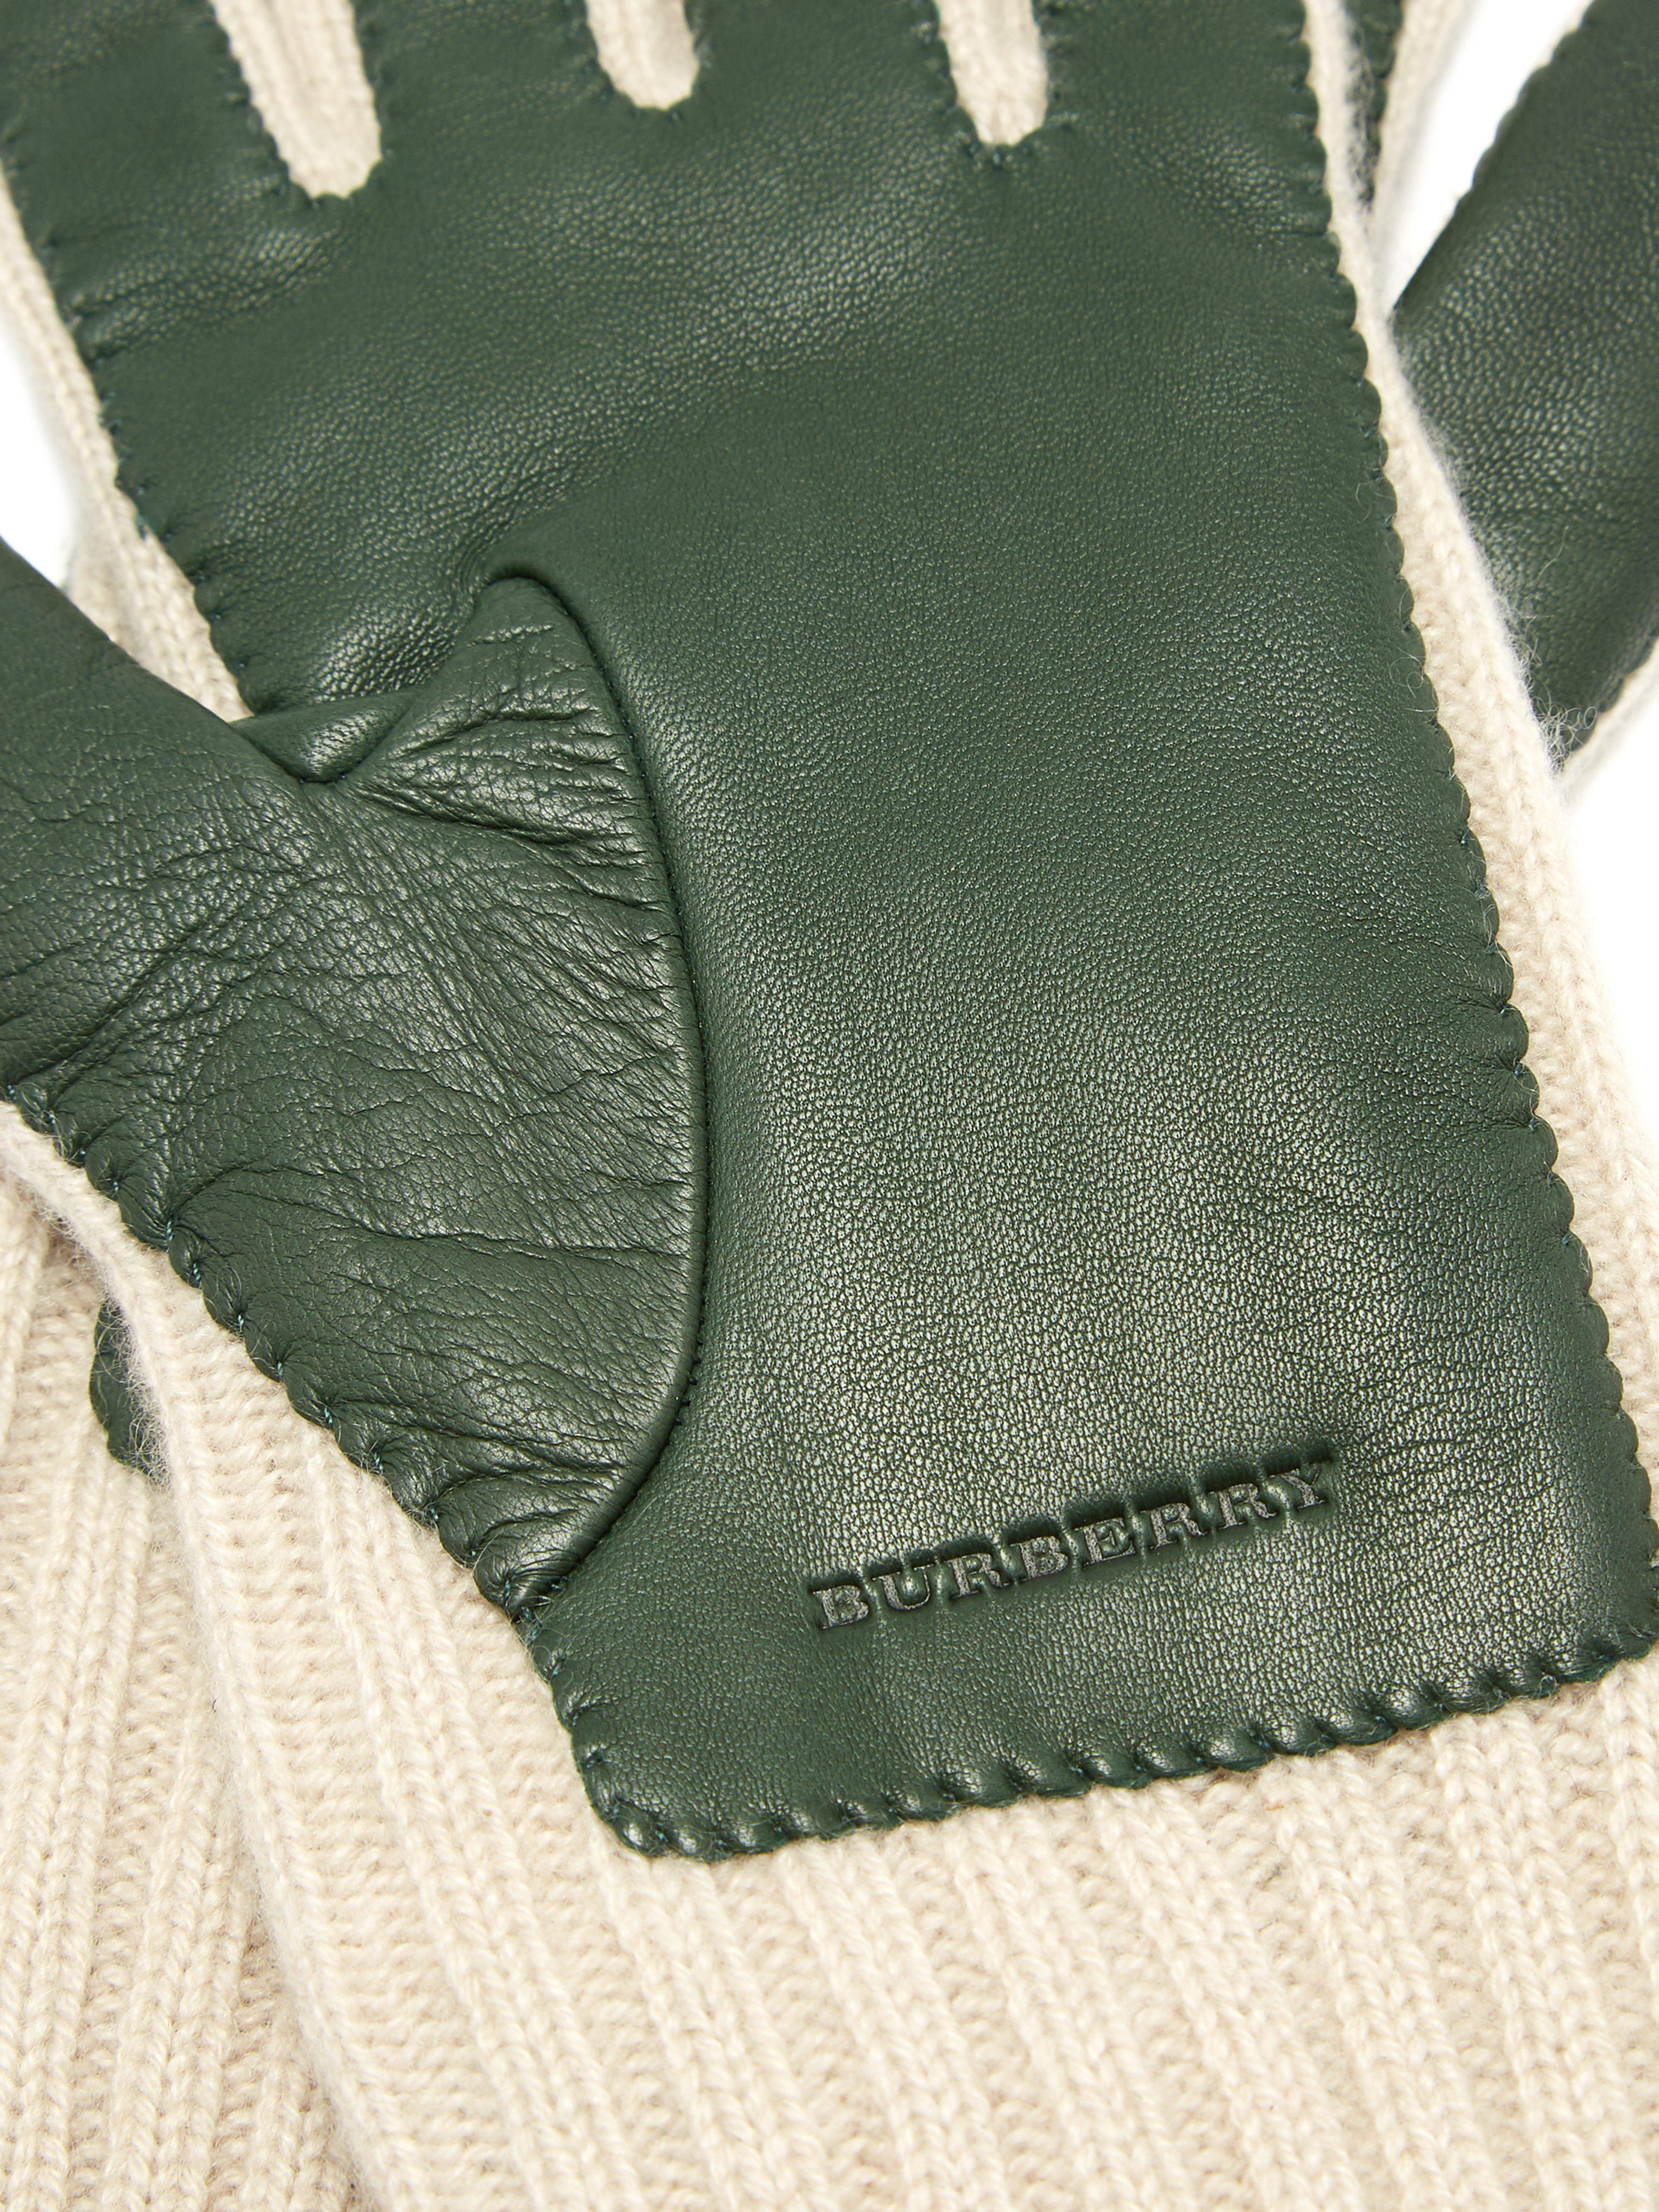 f114e1592a0d0 ... Burberry Green Leather Panelled Cashmere Gloves for men. Visit  MATCHESFASHION.COM. Tap to visit site